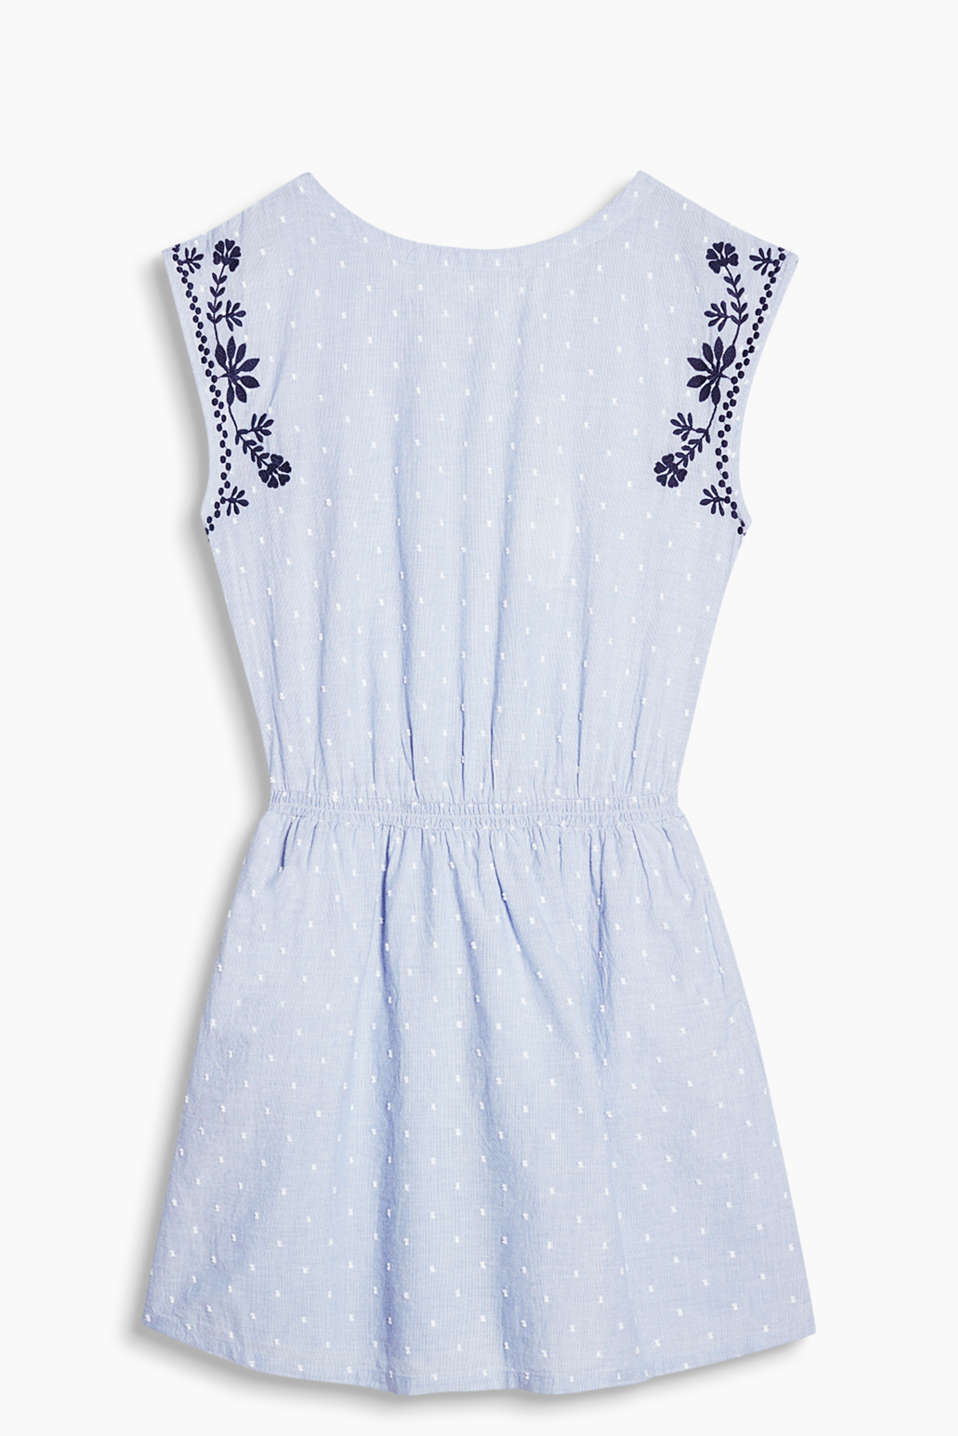 Floaty cotton dress with a beautiful back neckline and embroidery